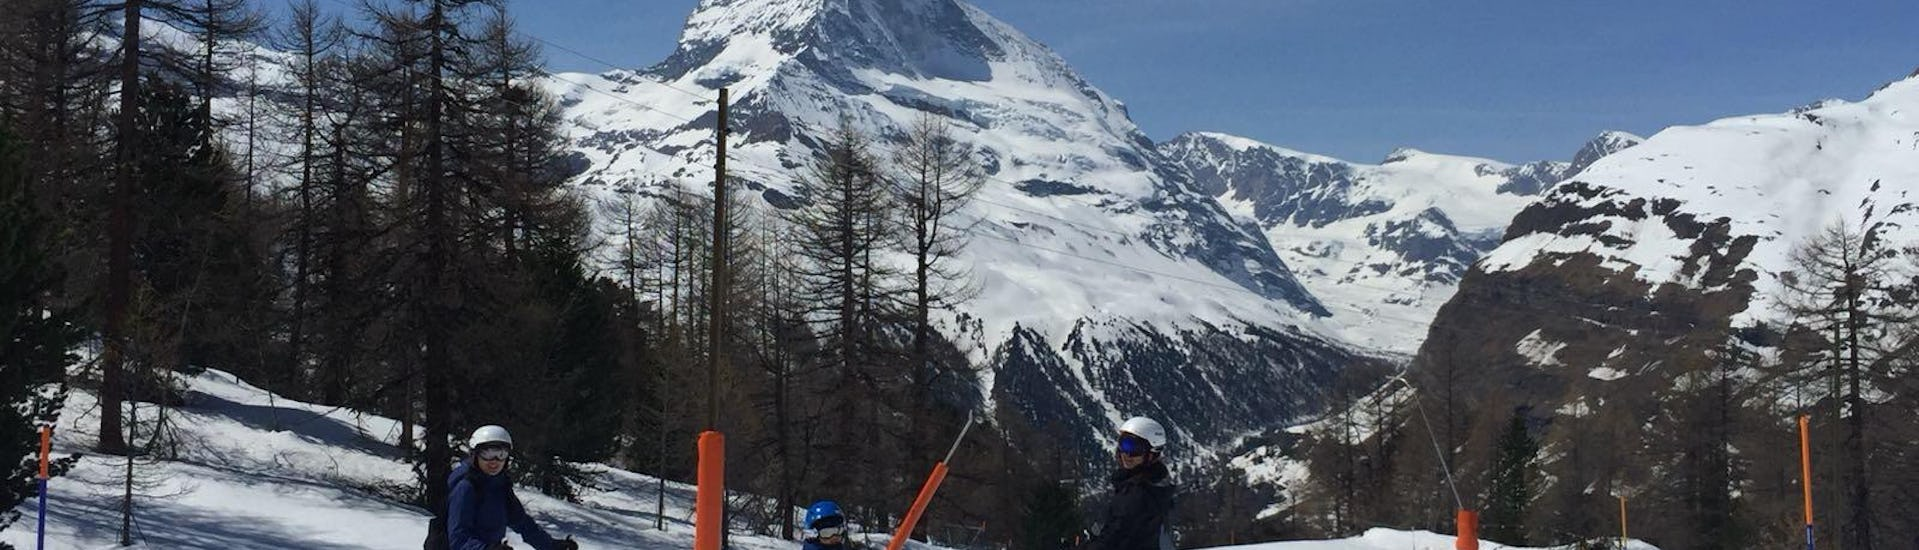 Ski Instructor Private for Families - Afternoon Class